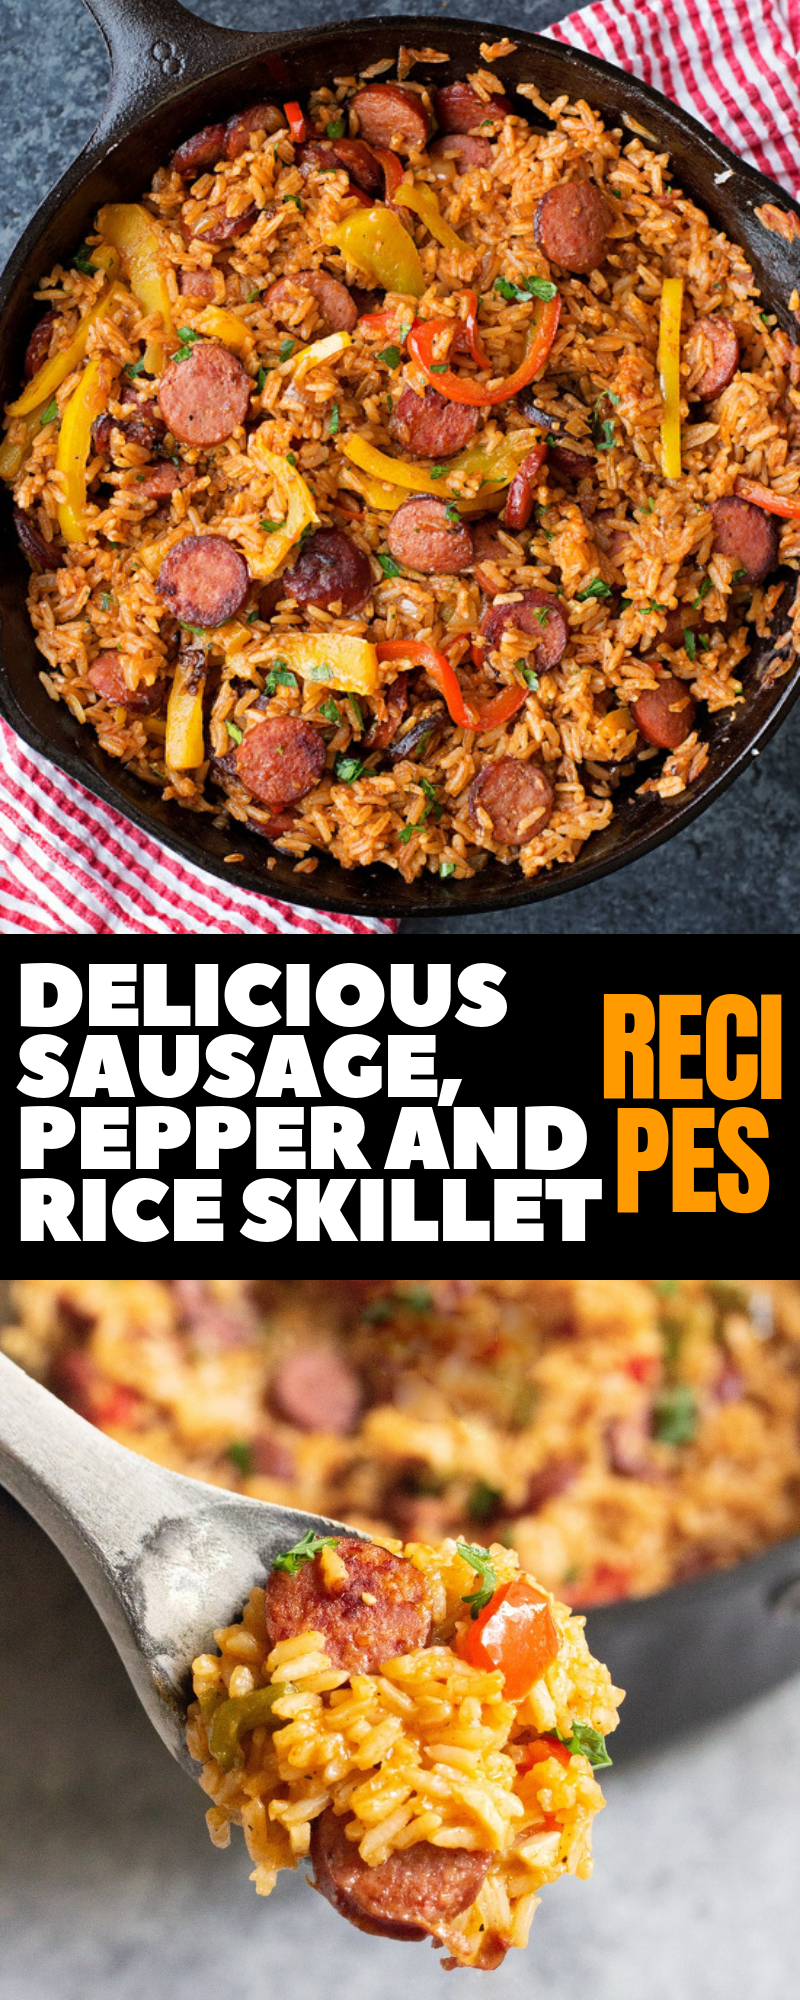 Delicious Sausage, Pepper and Rice Skillet Food Dinner Recipes #dinnerrecipes #ricerecipes #dinnerrecipesforfamilymaindishes